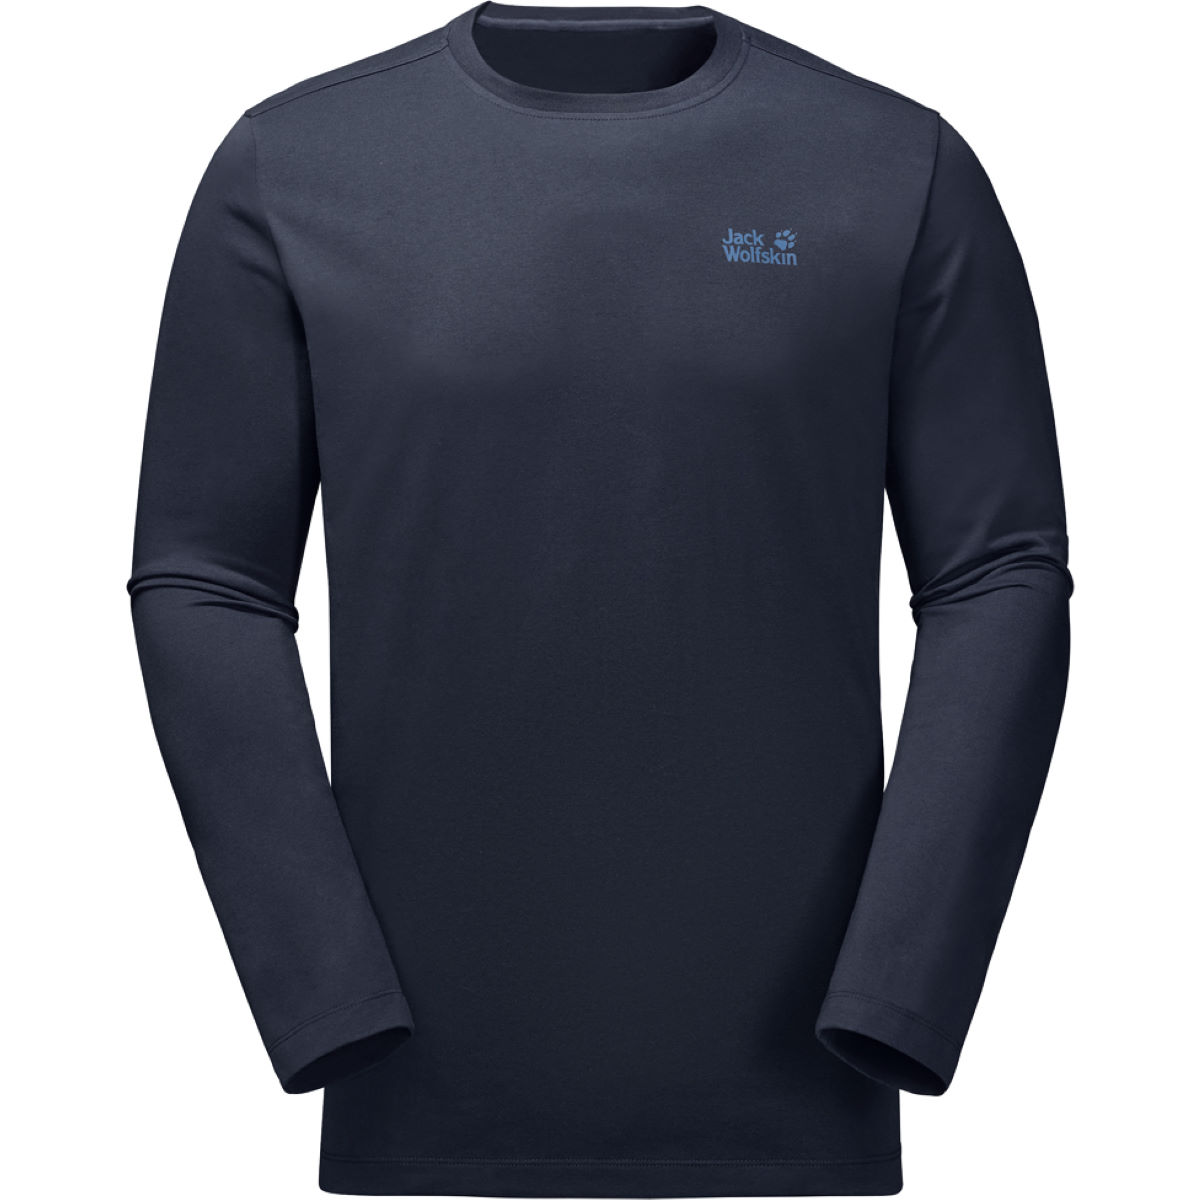 Jack Wolfskin Essential Long Sleeve Top - Camisetas interiores